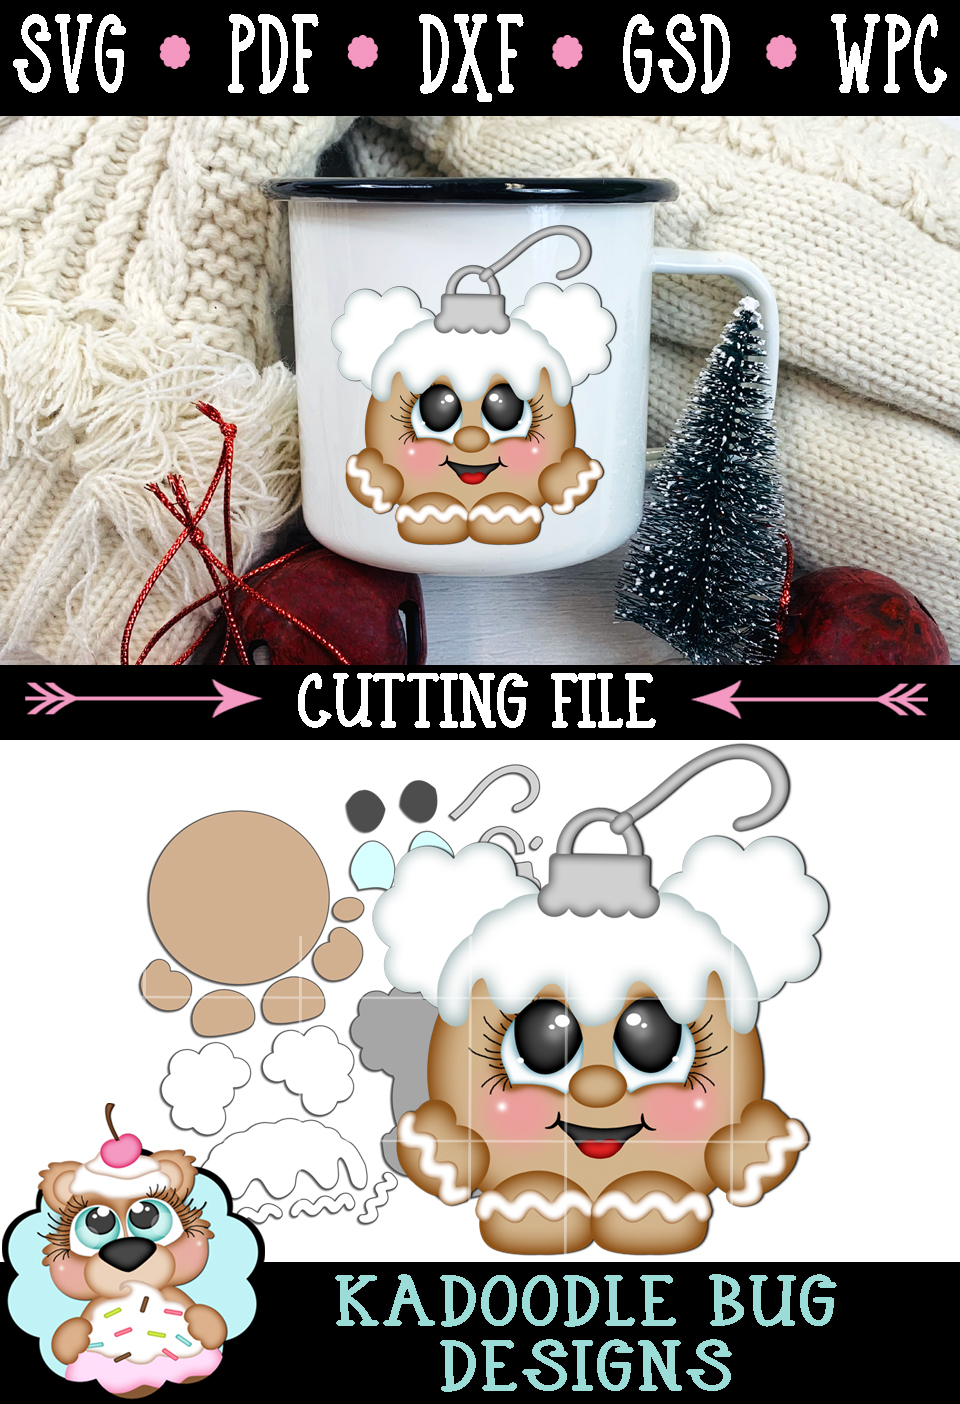 Ginger Girl Ornament Cutie Cut File - SVG PDF DXF GSD WPC example image 2